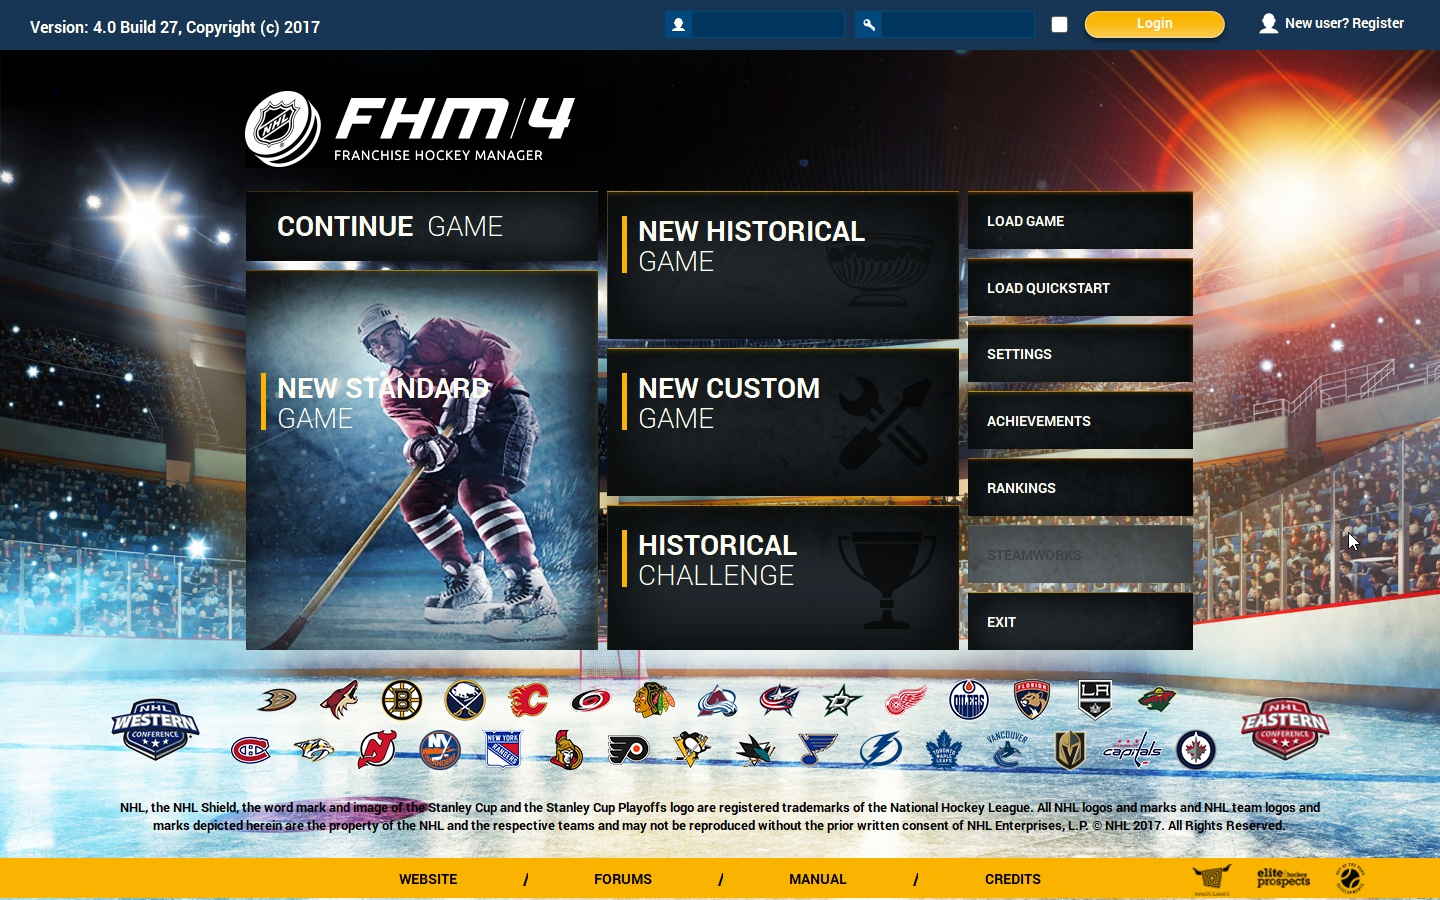 Franchise Hockey Manager 4 On Steam